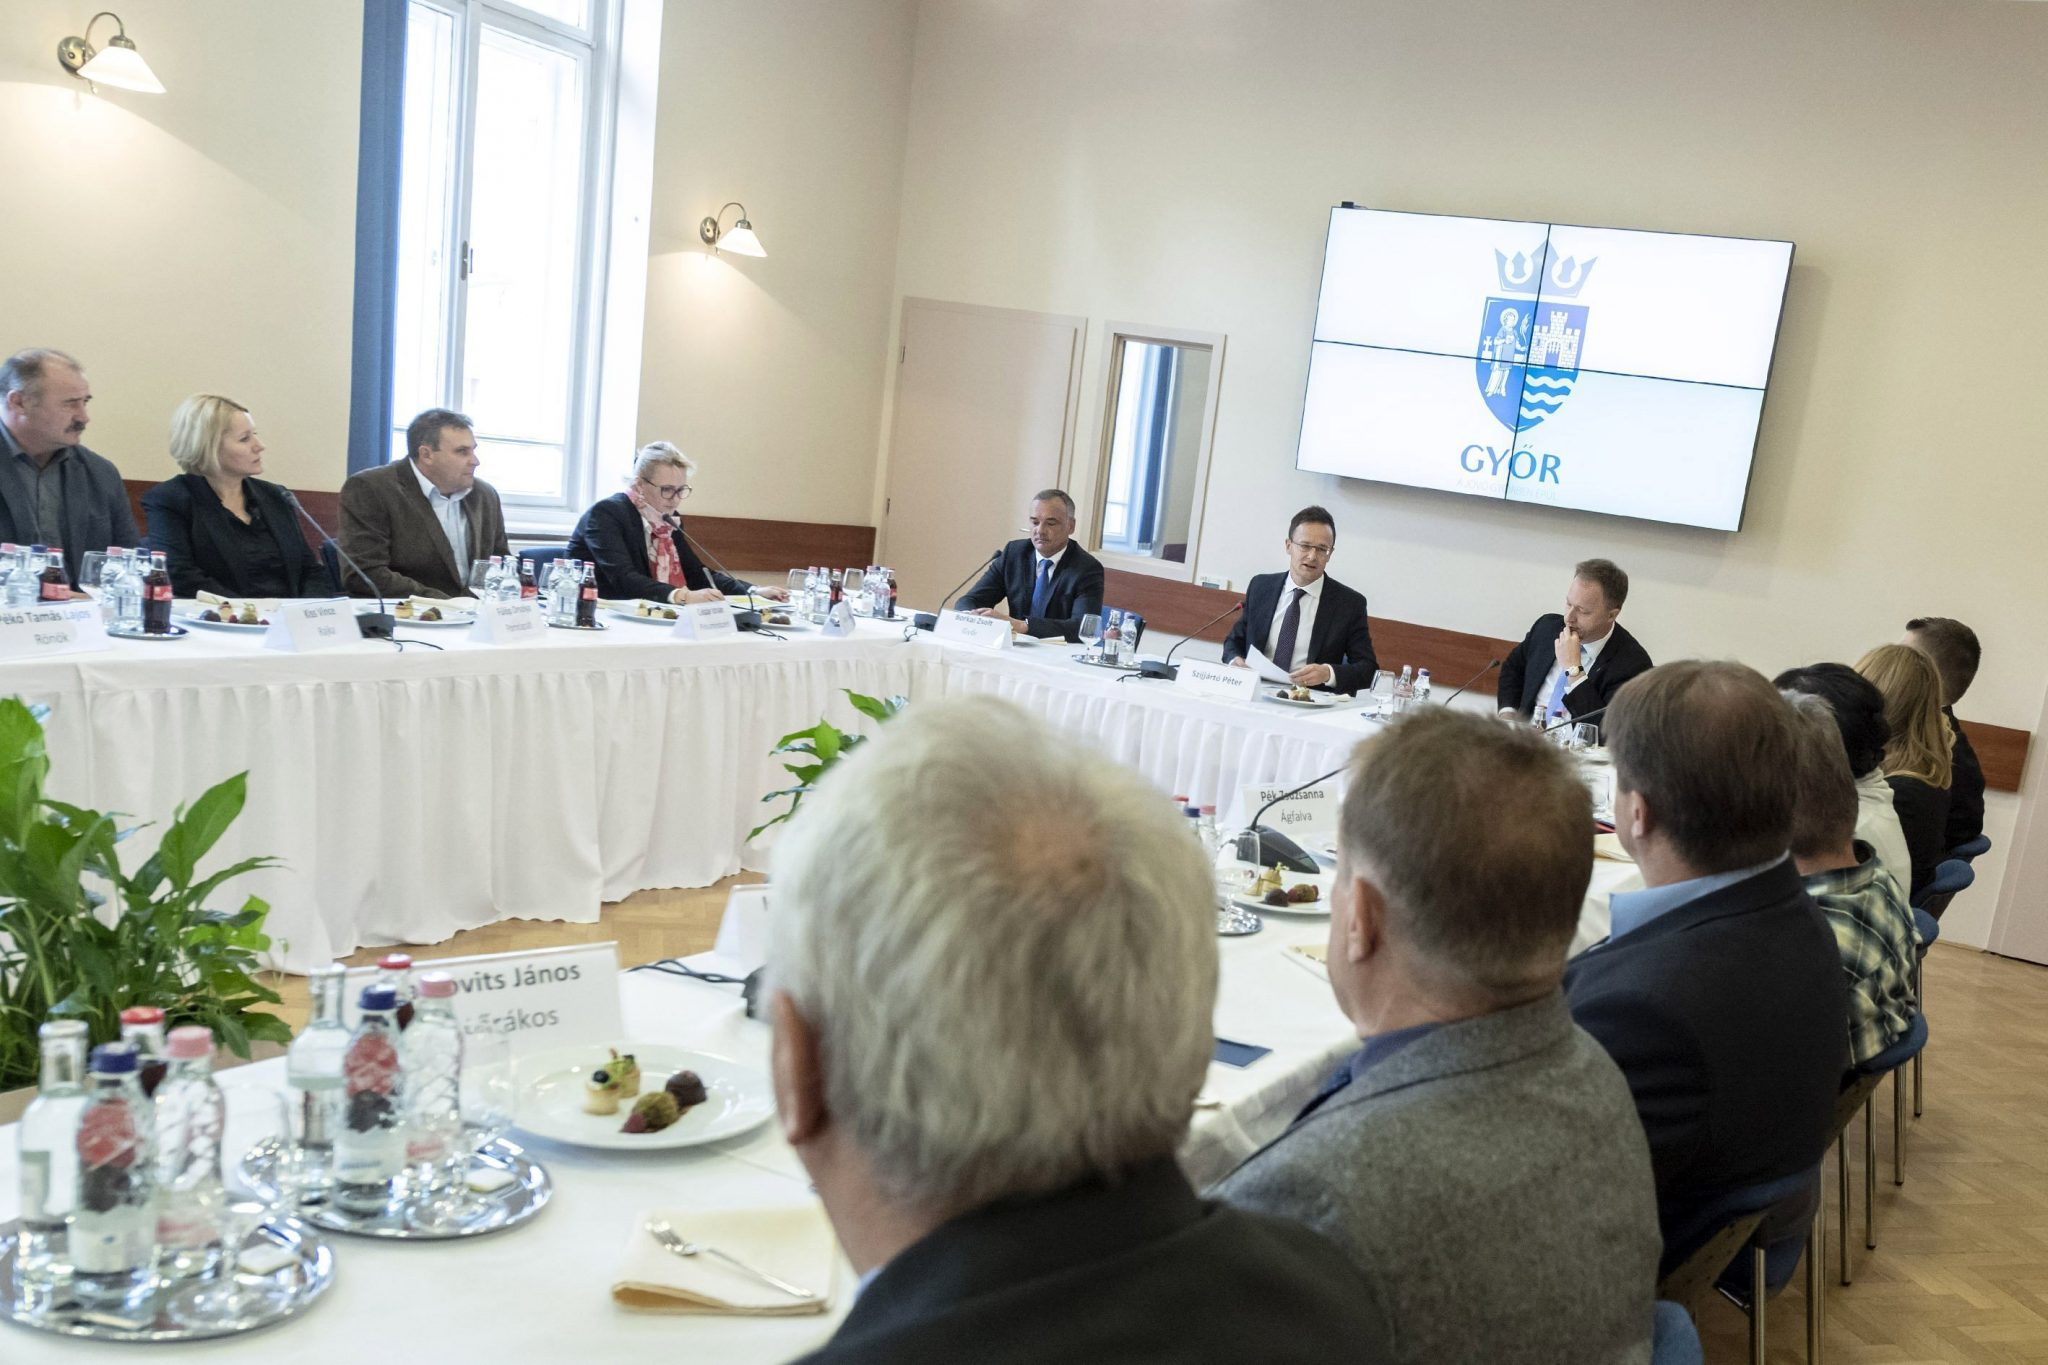 Szijjártó in Talks with Austrian Officials on Moves to Tighten Border Controls post's picture